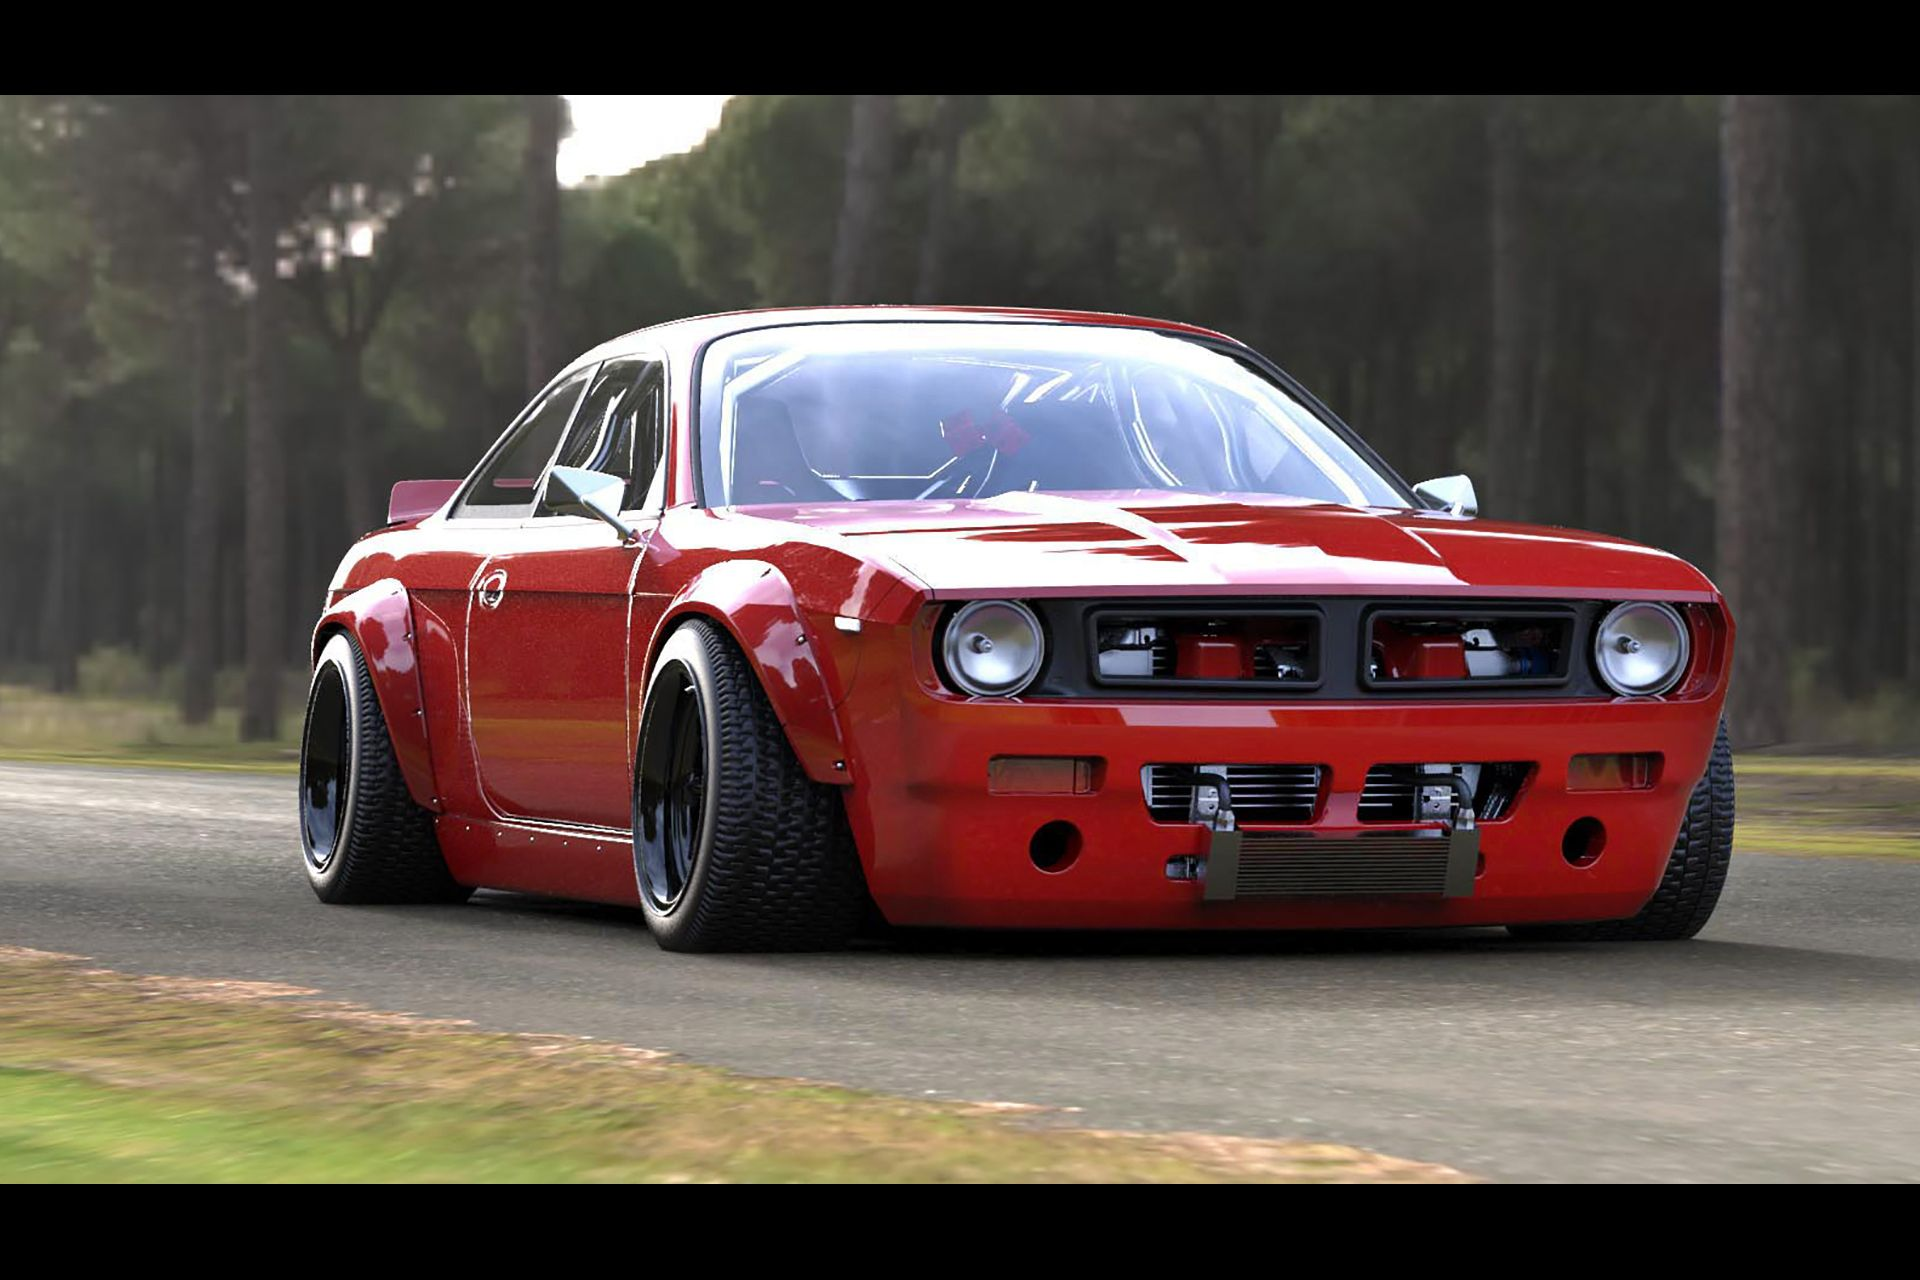 hight resolution of rocket bunny s14 v2 boss aero kit preorder sale zilvia net forums nissan 240sx silvia and z fairlady car forum